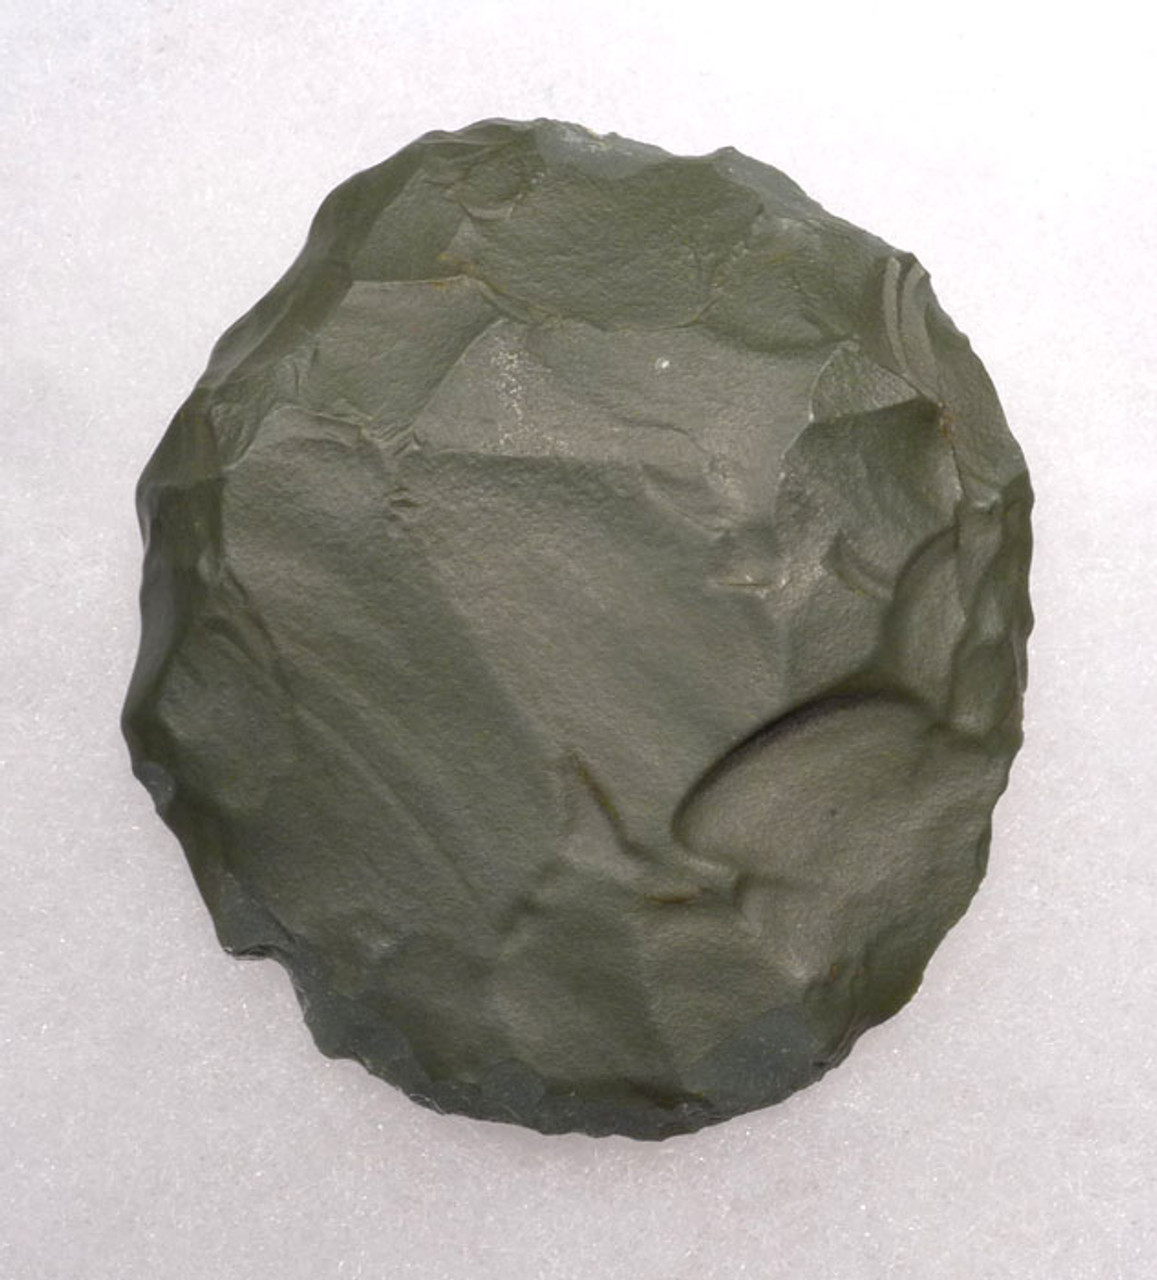 TEN001 - TENERIAN AFRICAN NEOLITHIC GREEN JASPER DISC SCRAPER FROM THE PEOPLE OF THE GREEN SAHARA